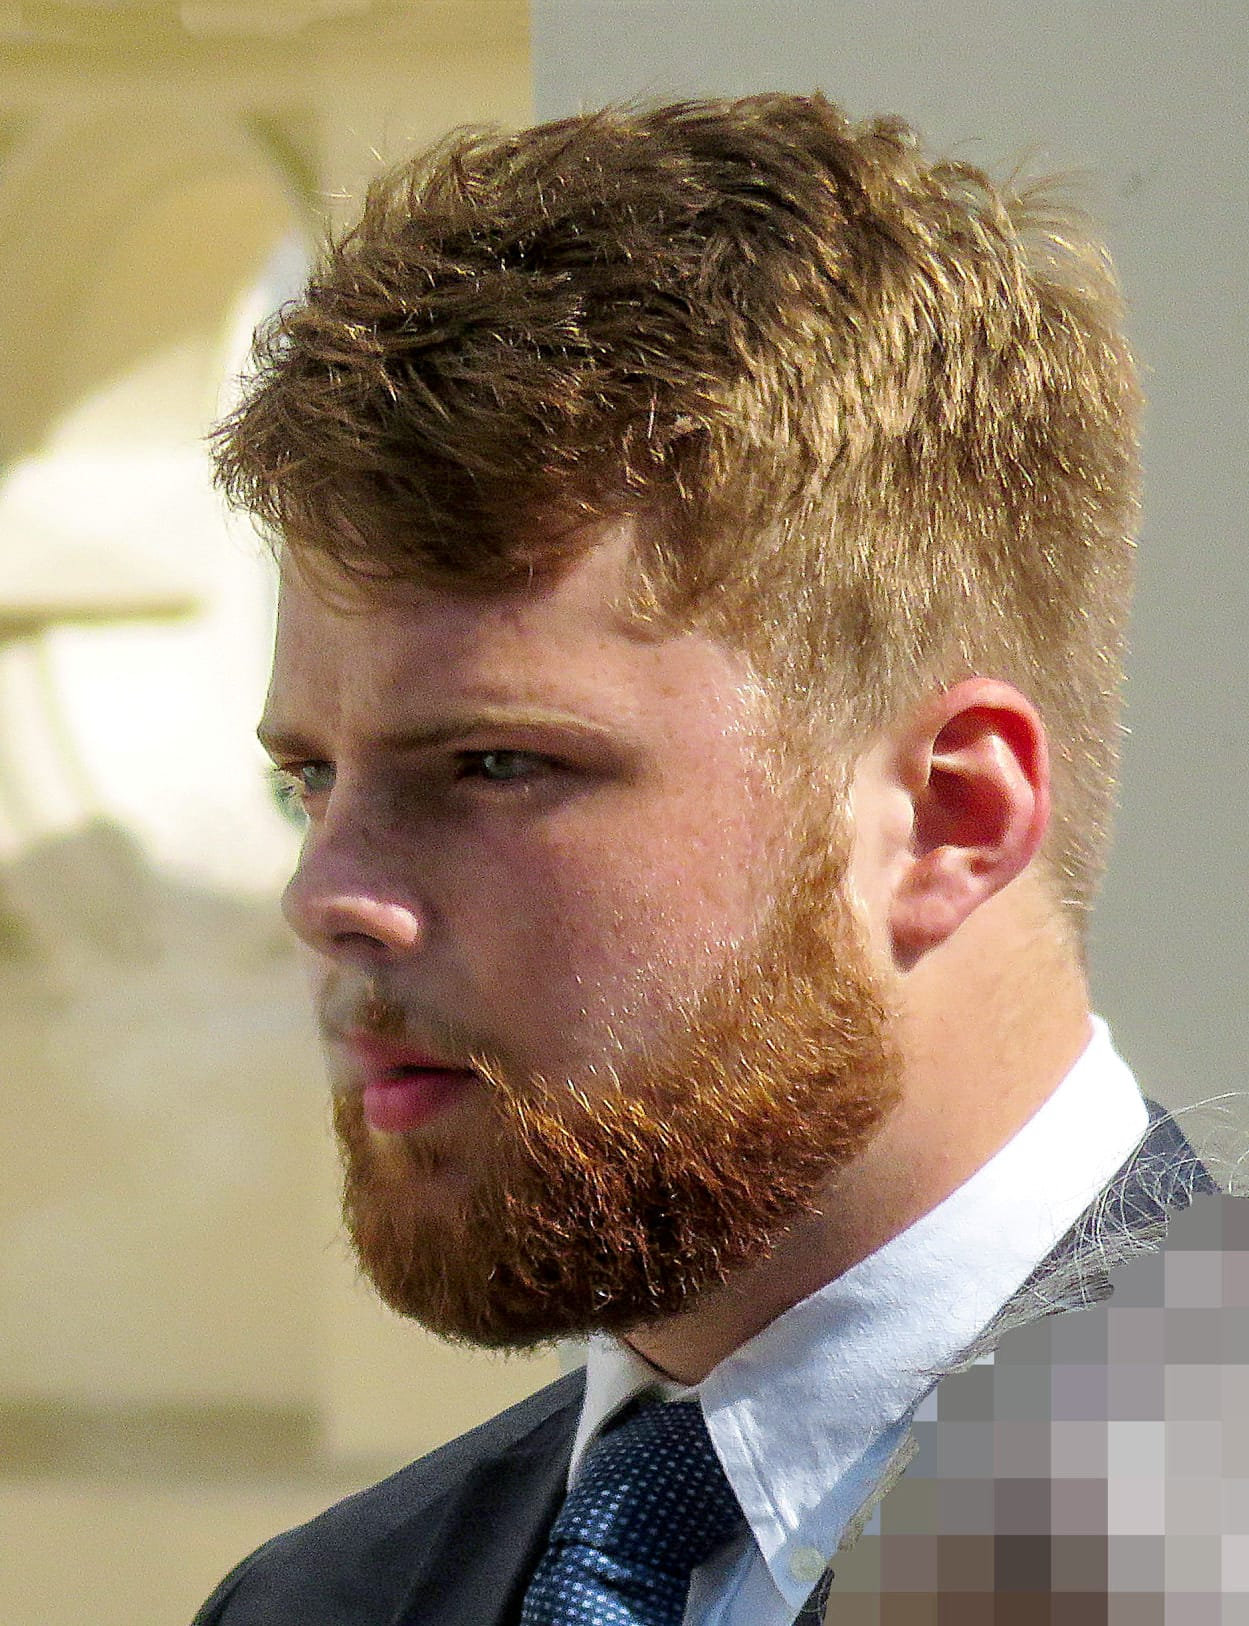 Stark, of Claverdon, Warks., was jailed for two years after he admitted two charges of causing serious injury by dangerous driving at Warwick Crown Court (Image: SWNS)